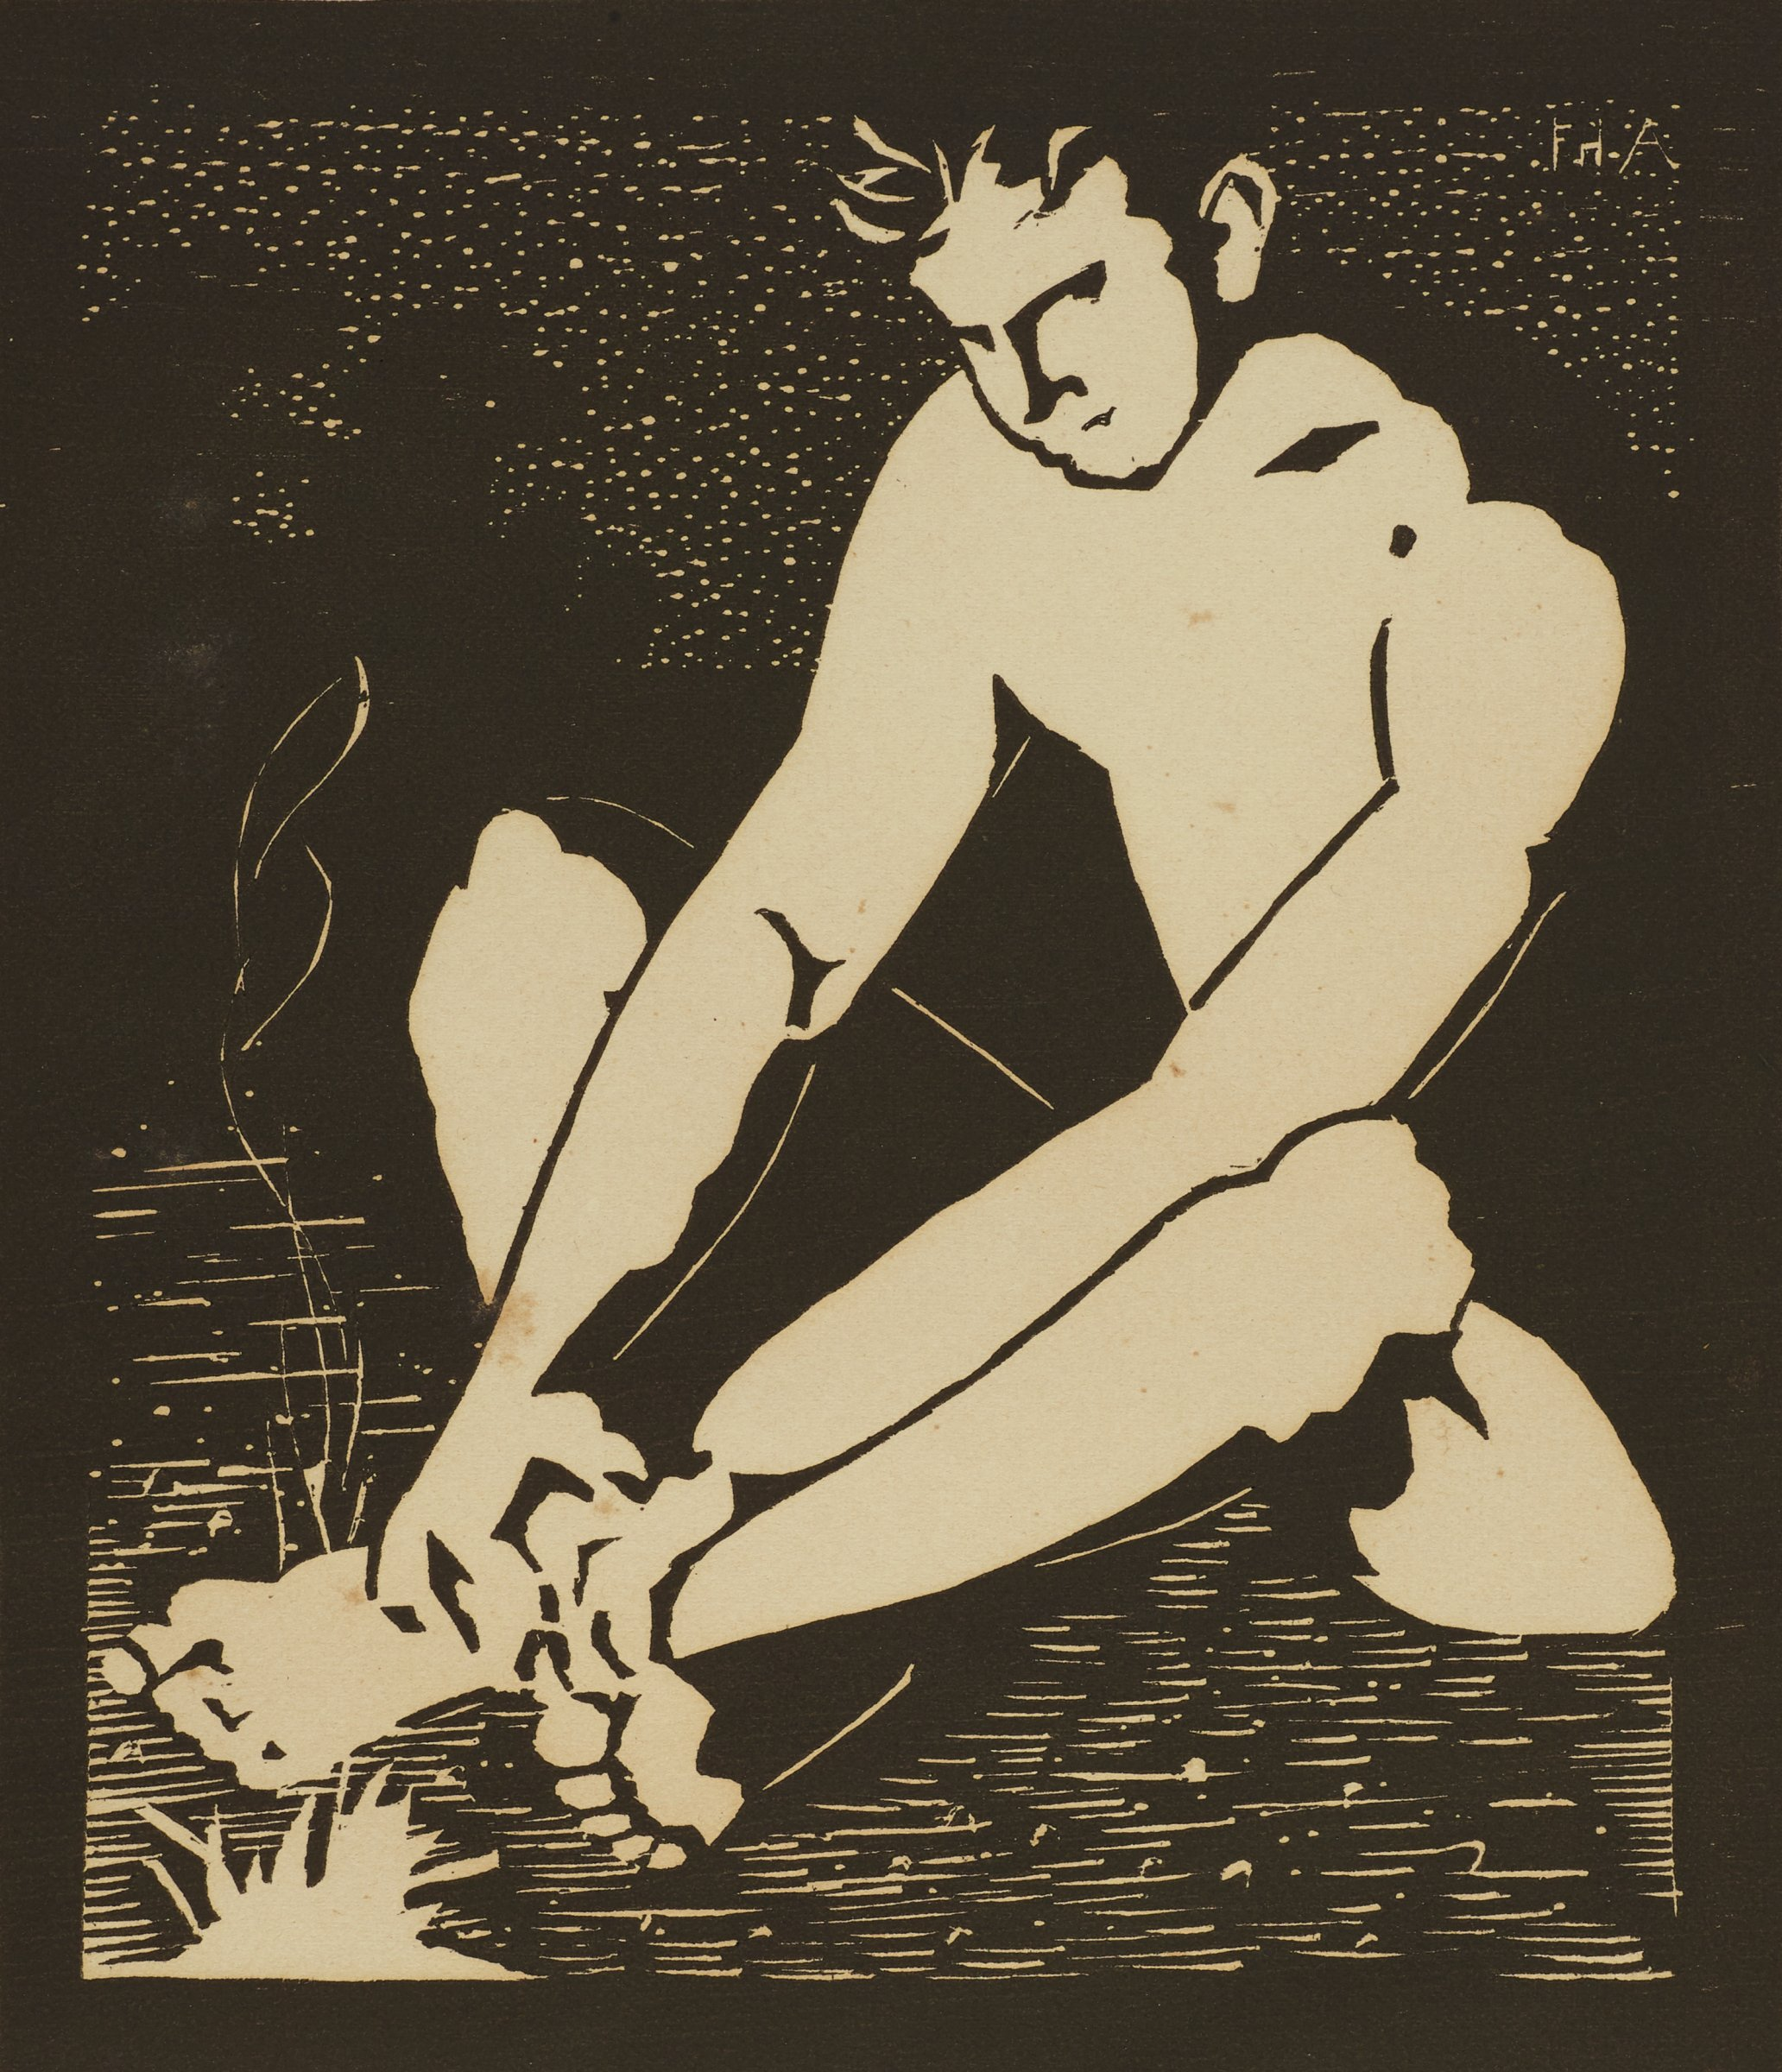 In this black and white print, a male figure sits with his ankles crossed and his hands resting on his ankles. He appears to be naked. In front of him in the lower left of the image is a small, smoking fire.